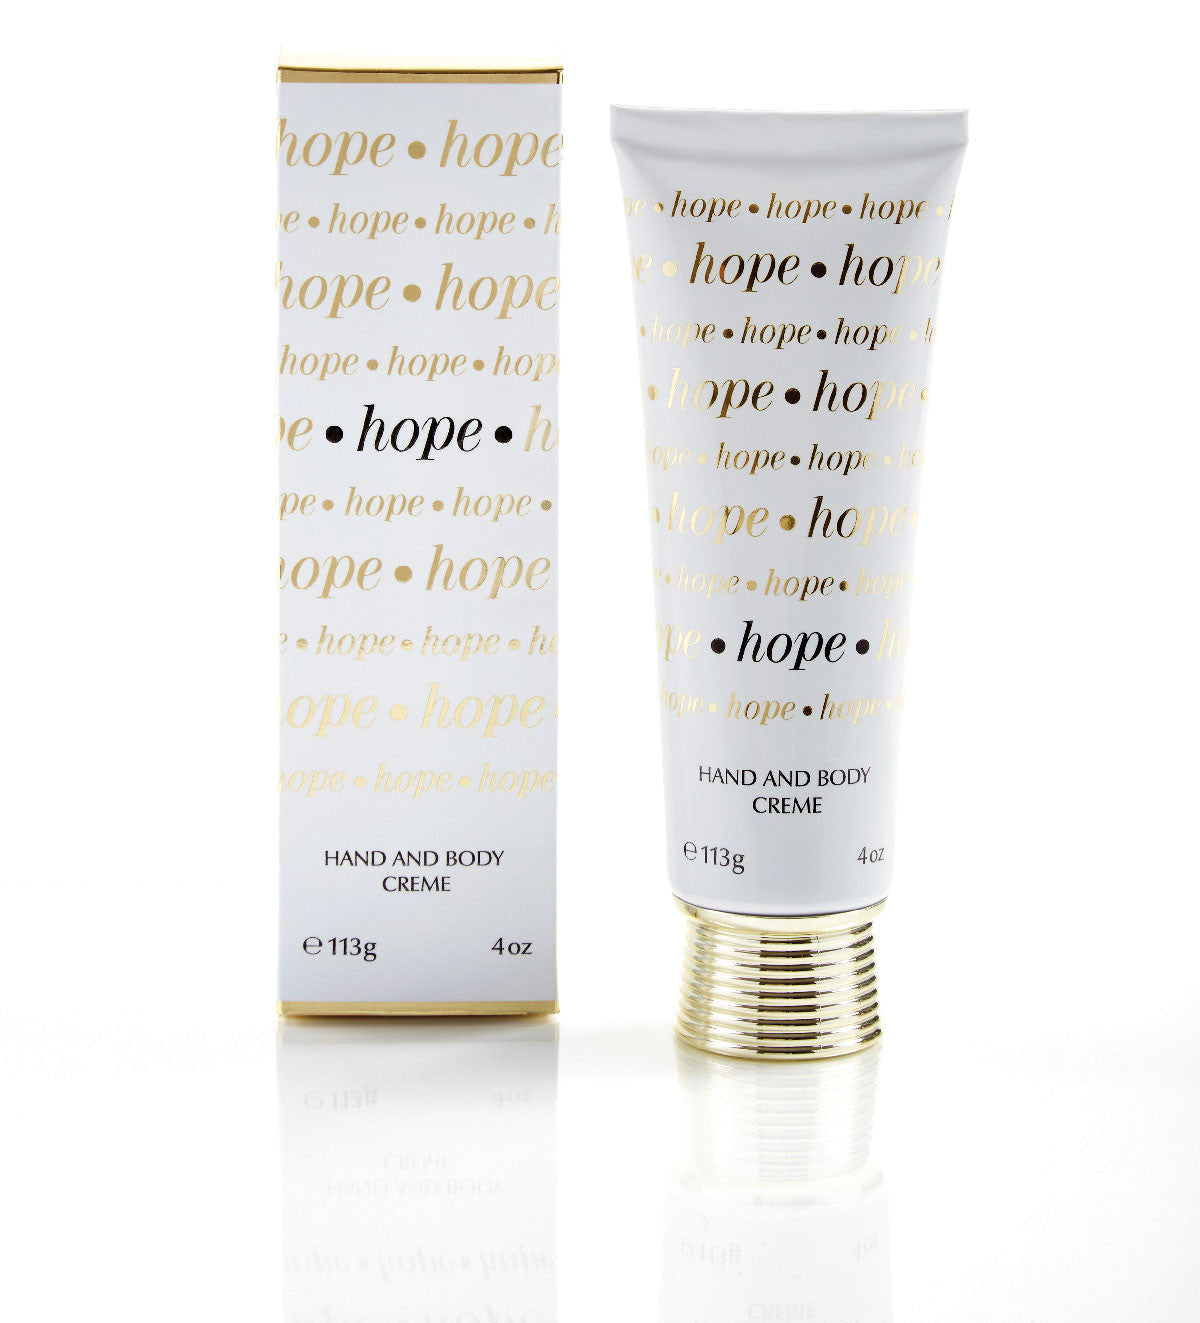 Hand and Body Crème